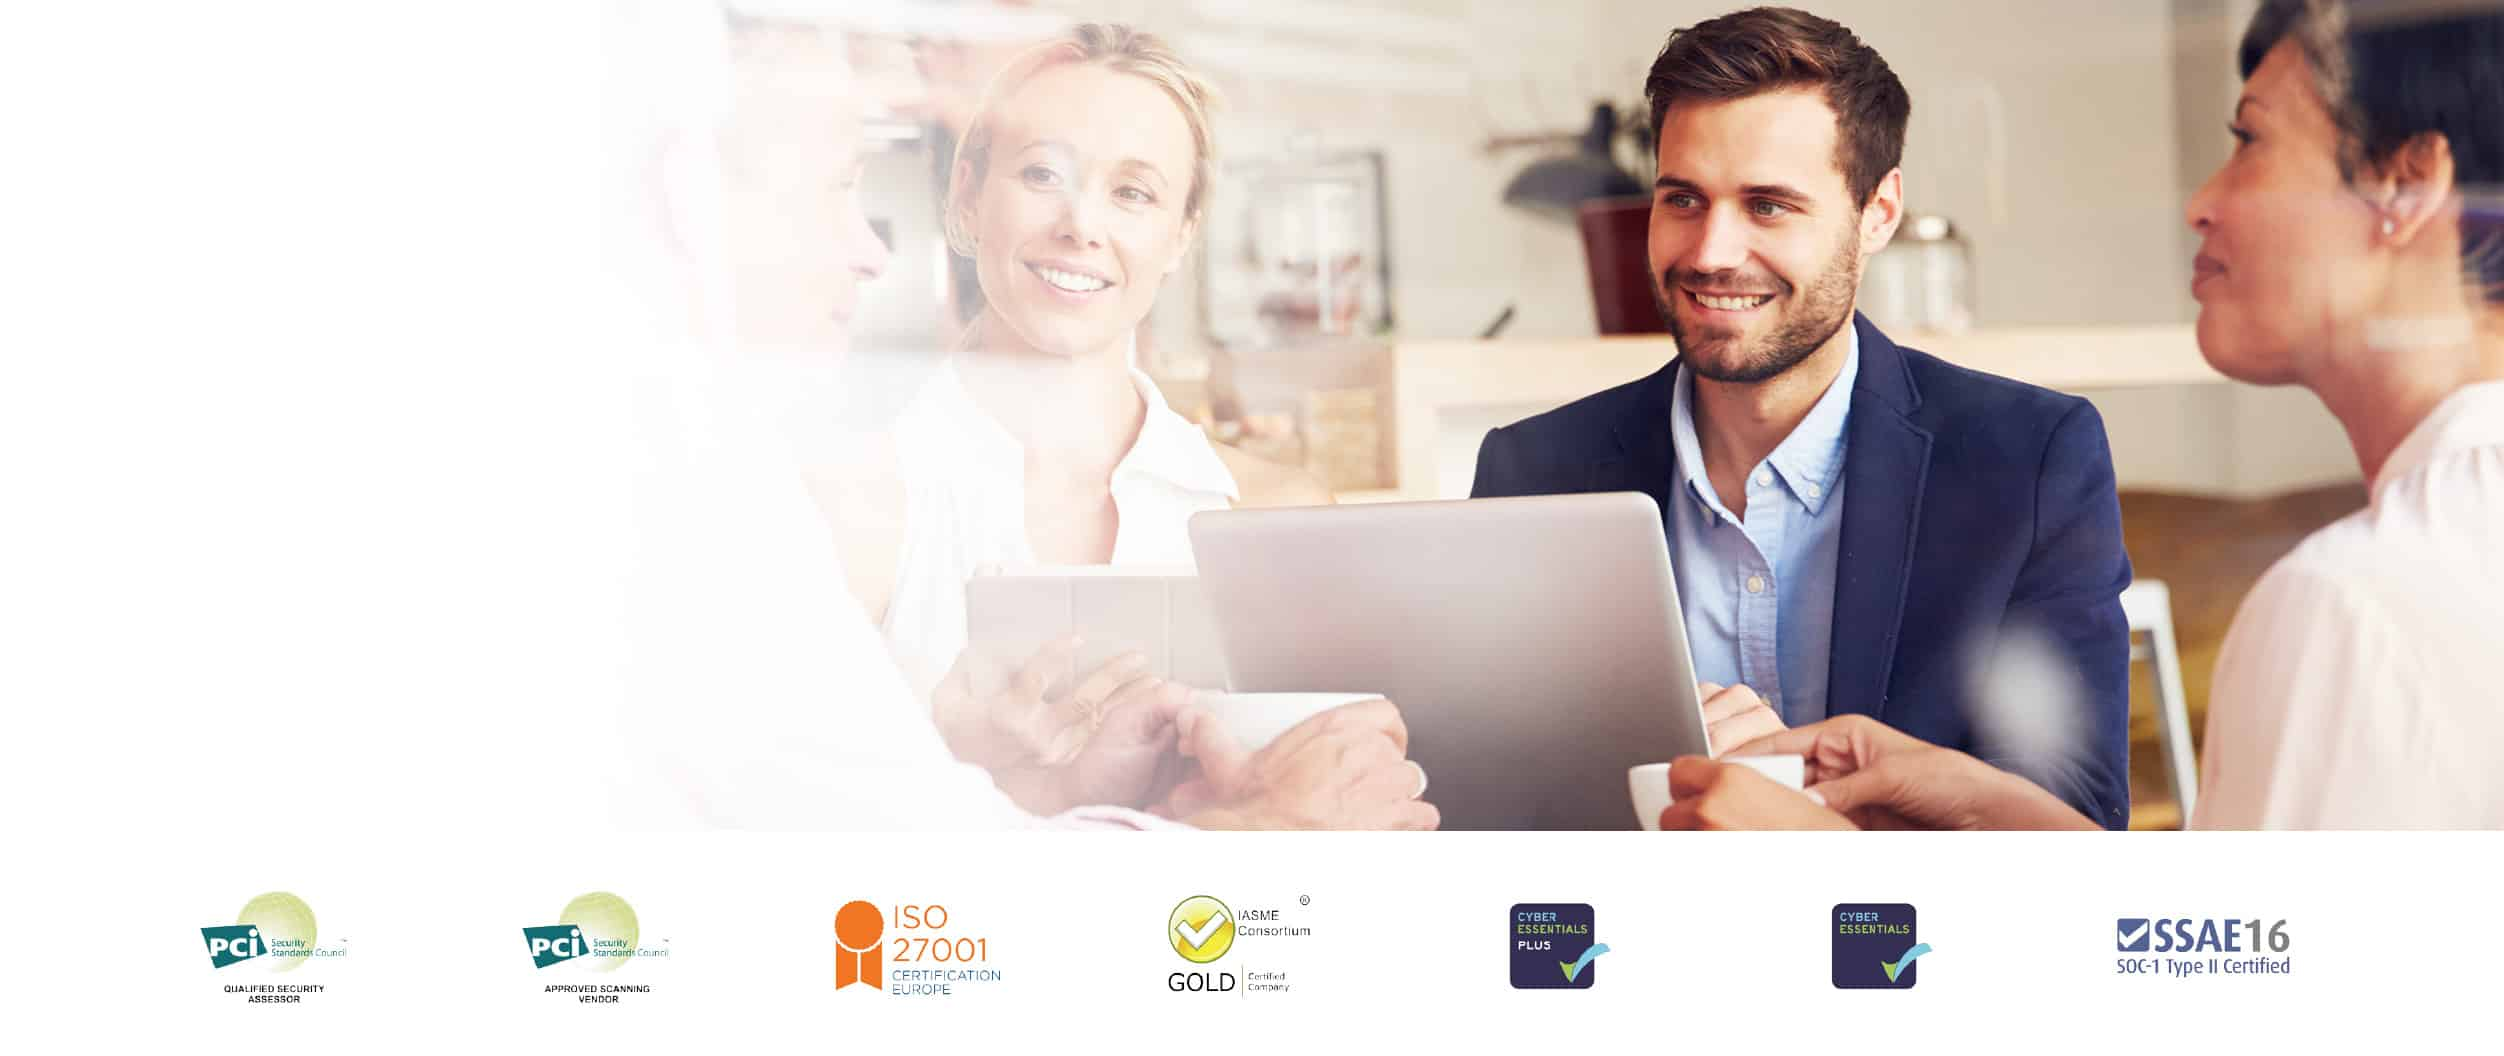 Mastercard-Level4-Programme-Sysnet-Global-Solutions-Banner